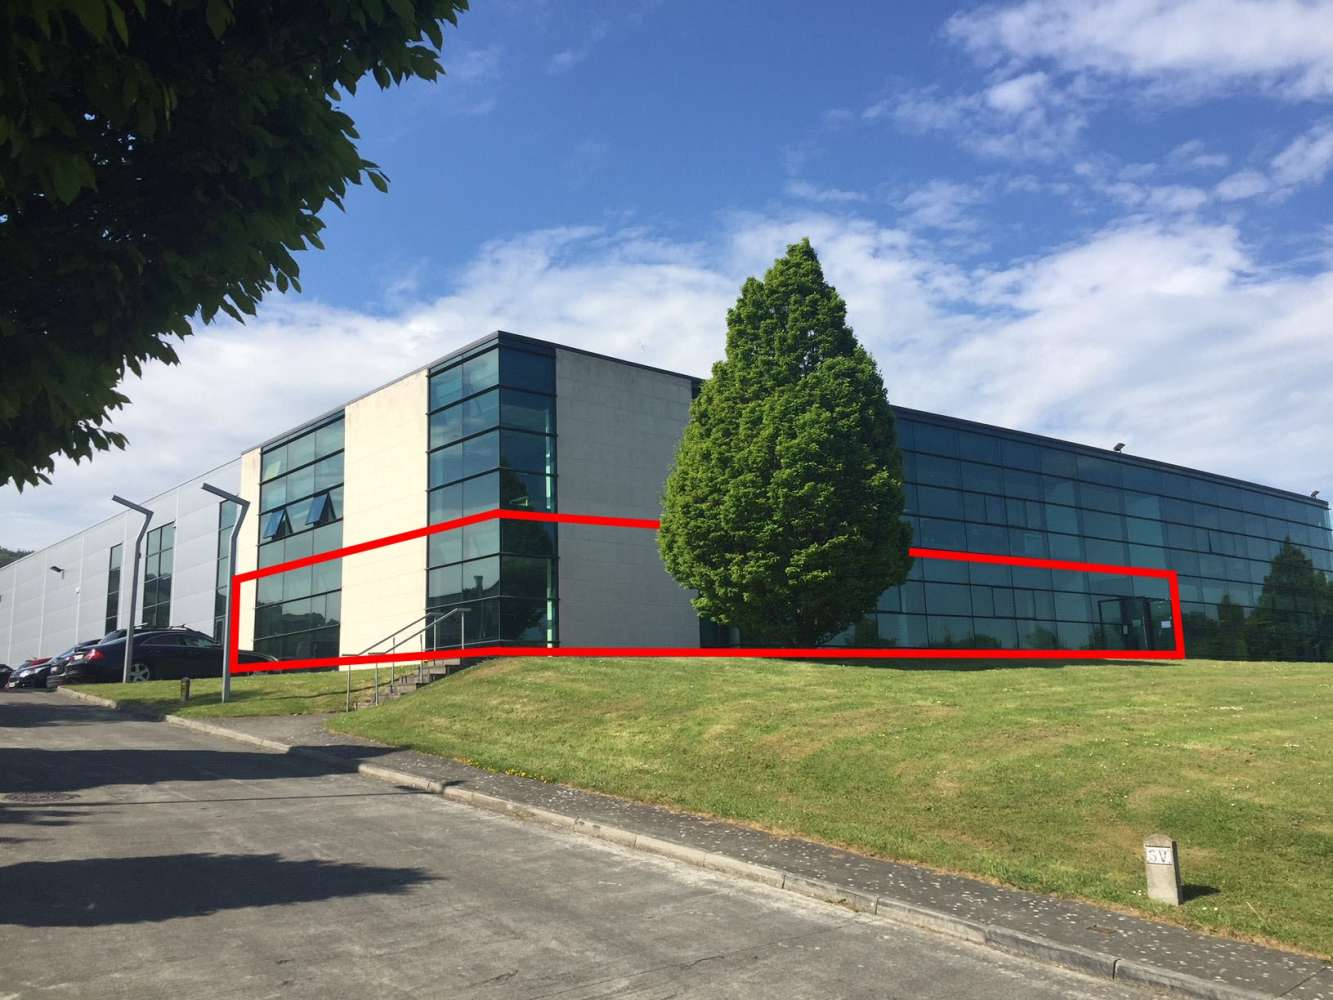 Office Co wicklow, A98 V6F2 - Part of Bisley Facility, Bray IDA Business Park